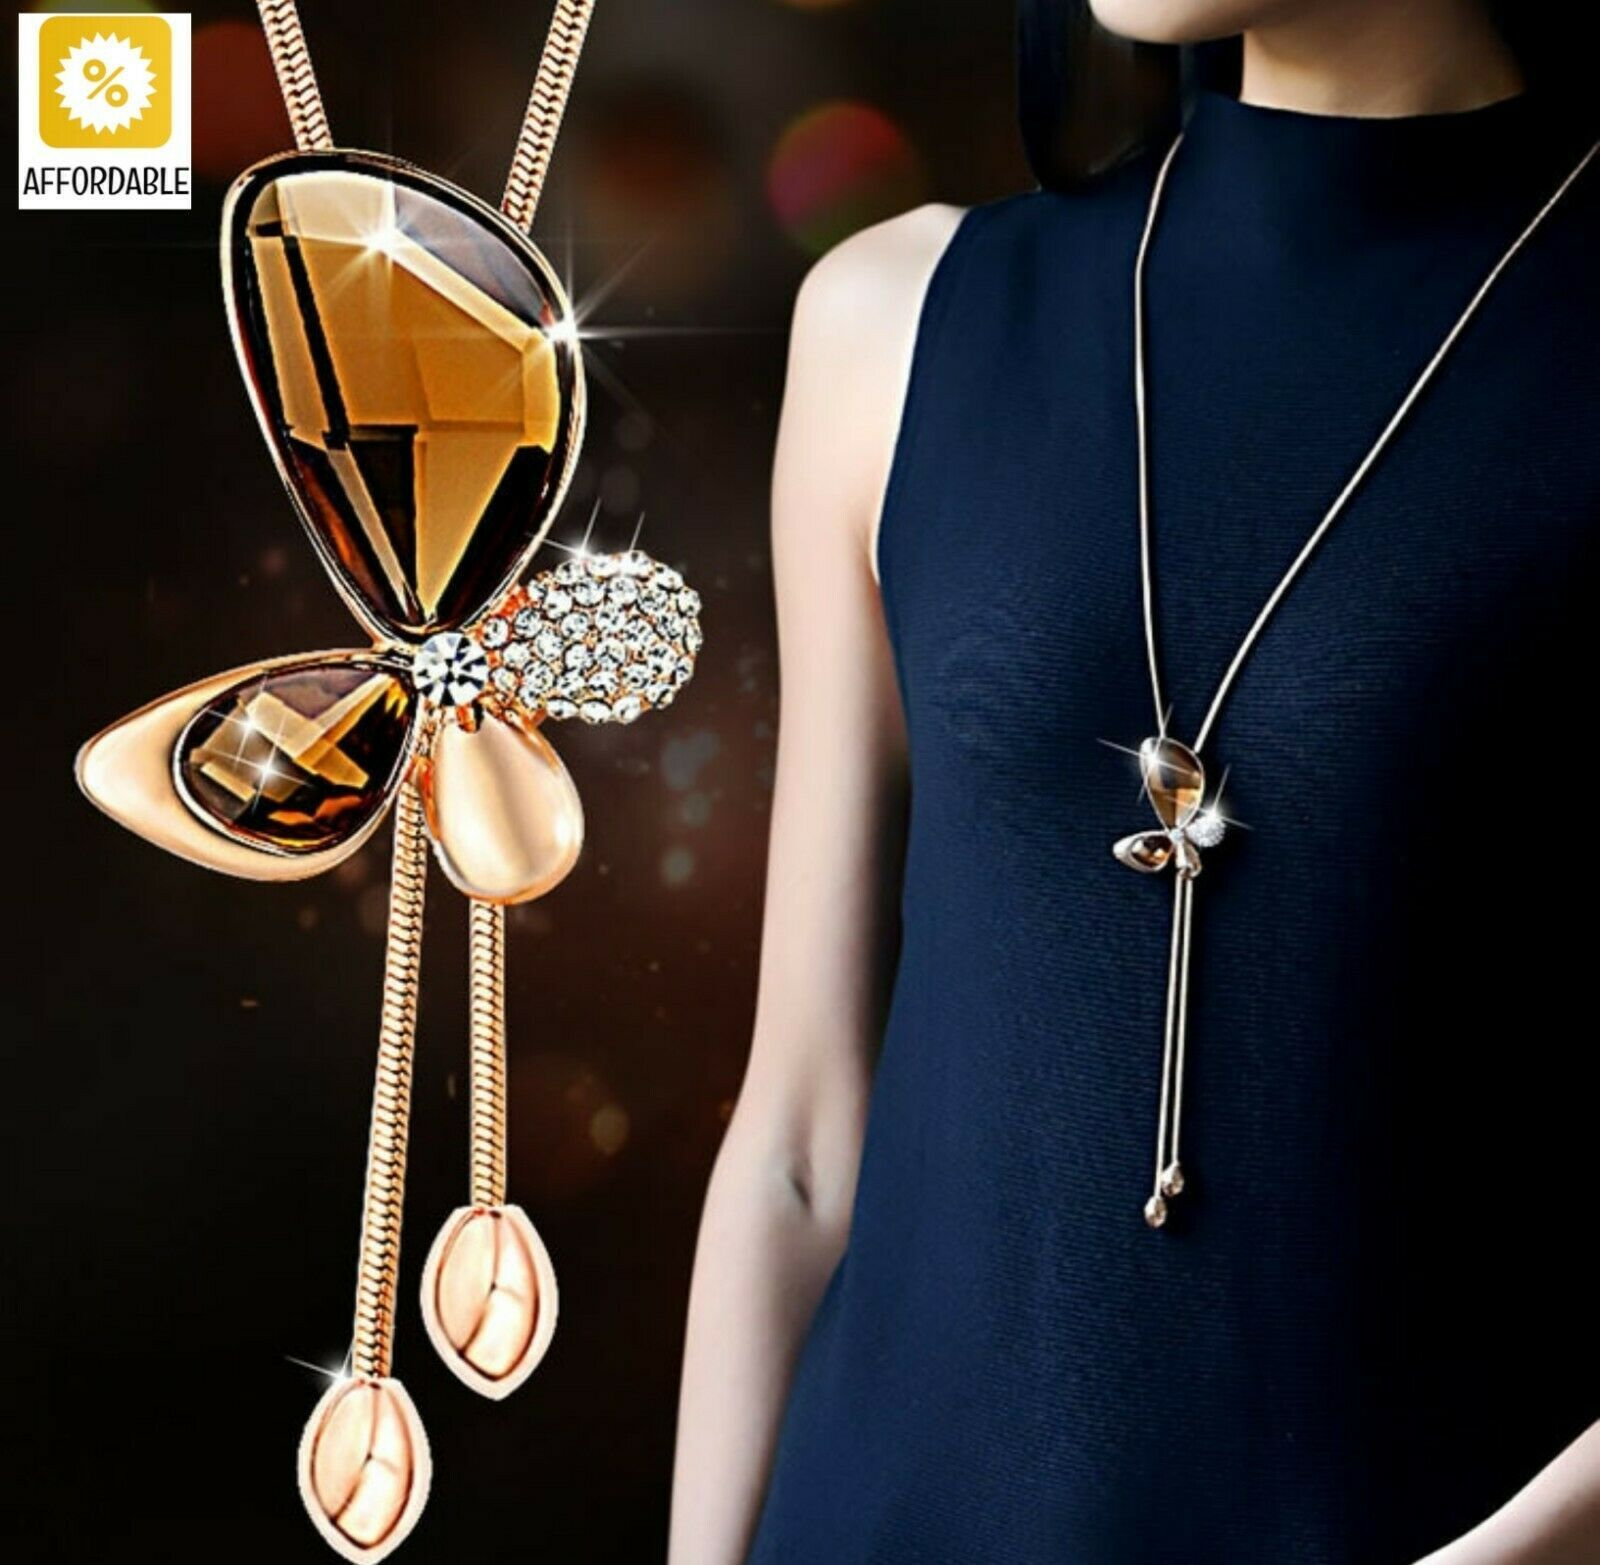 Necklace For Women Classic Crystal Butterfly Tassel Long Necklaces Pendants Gift - $9.88